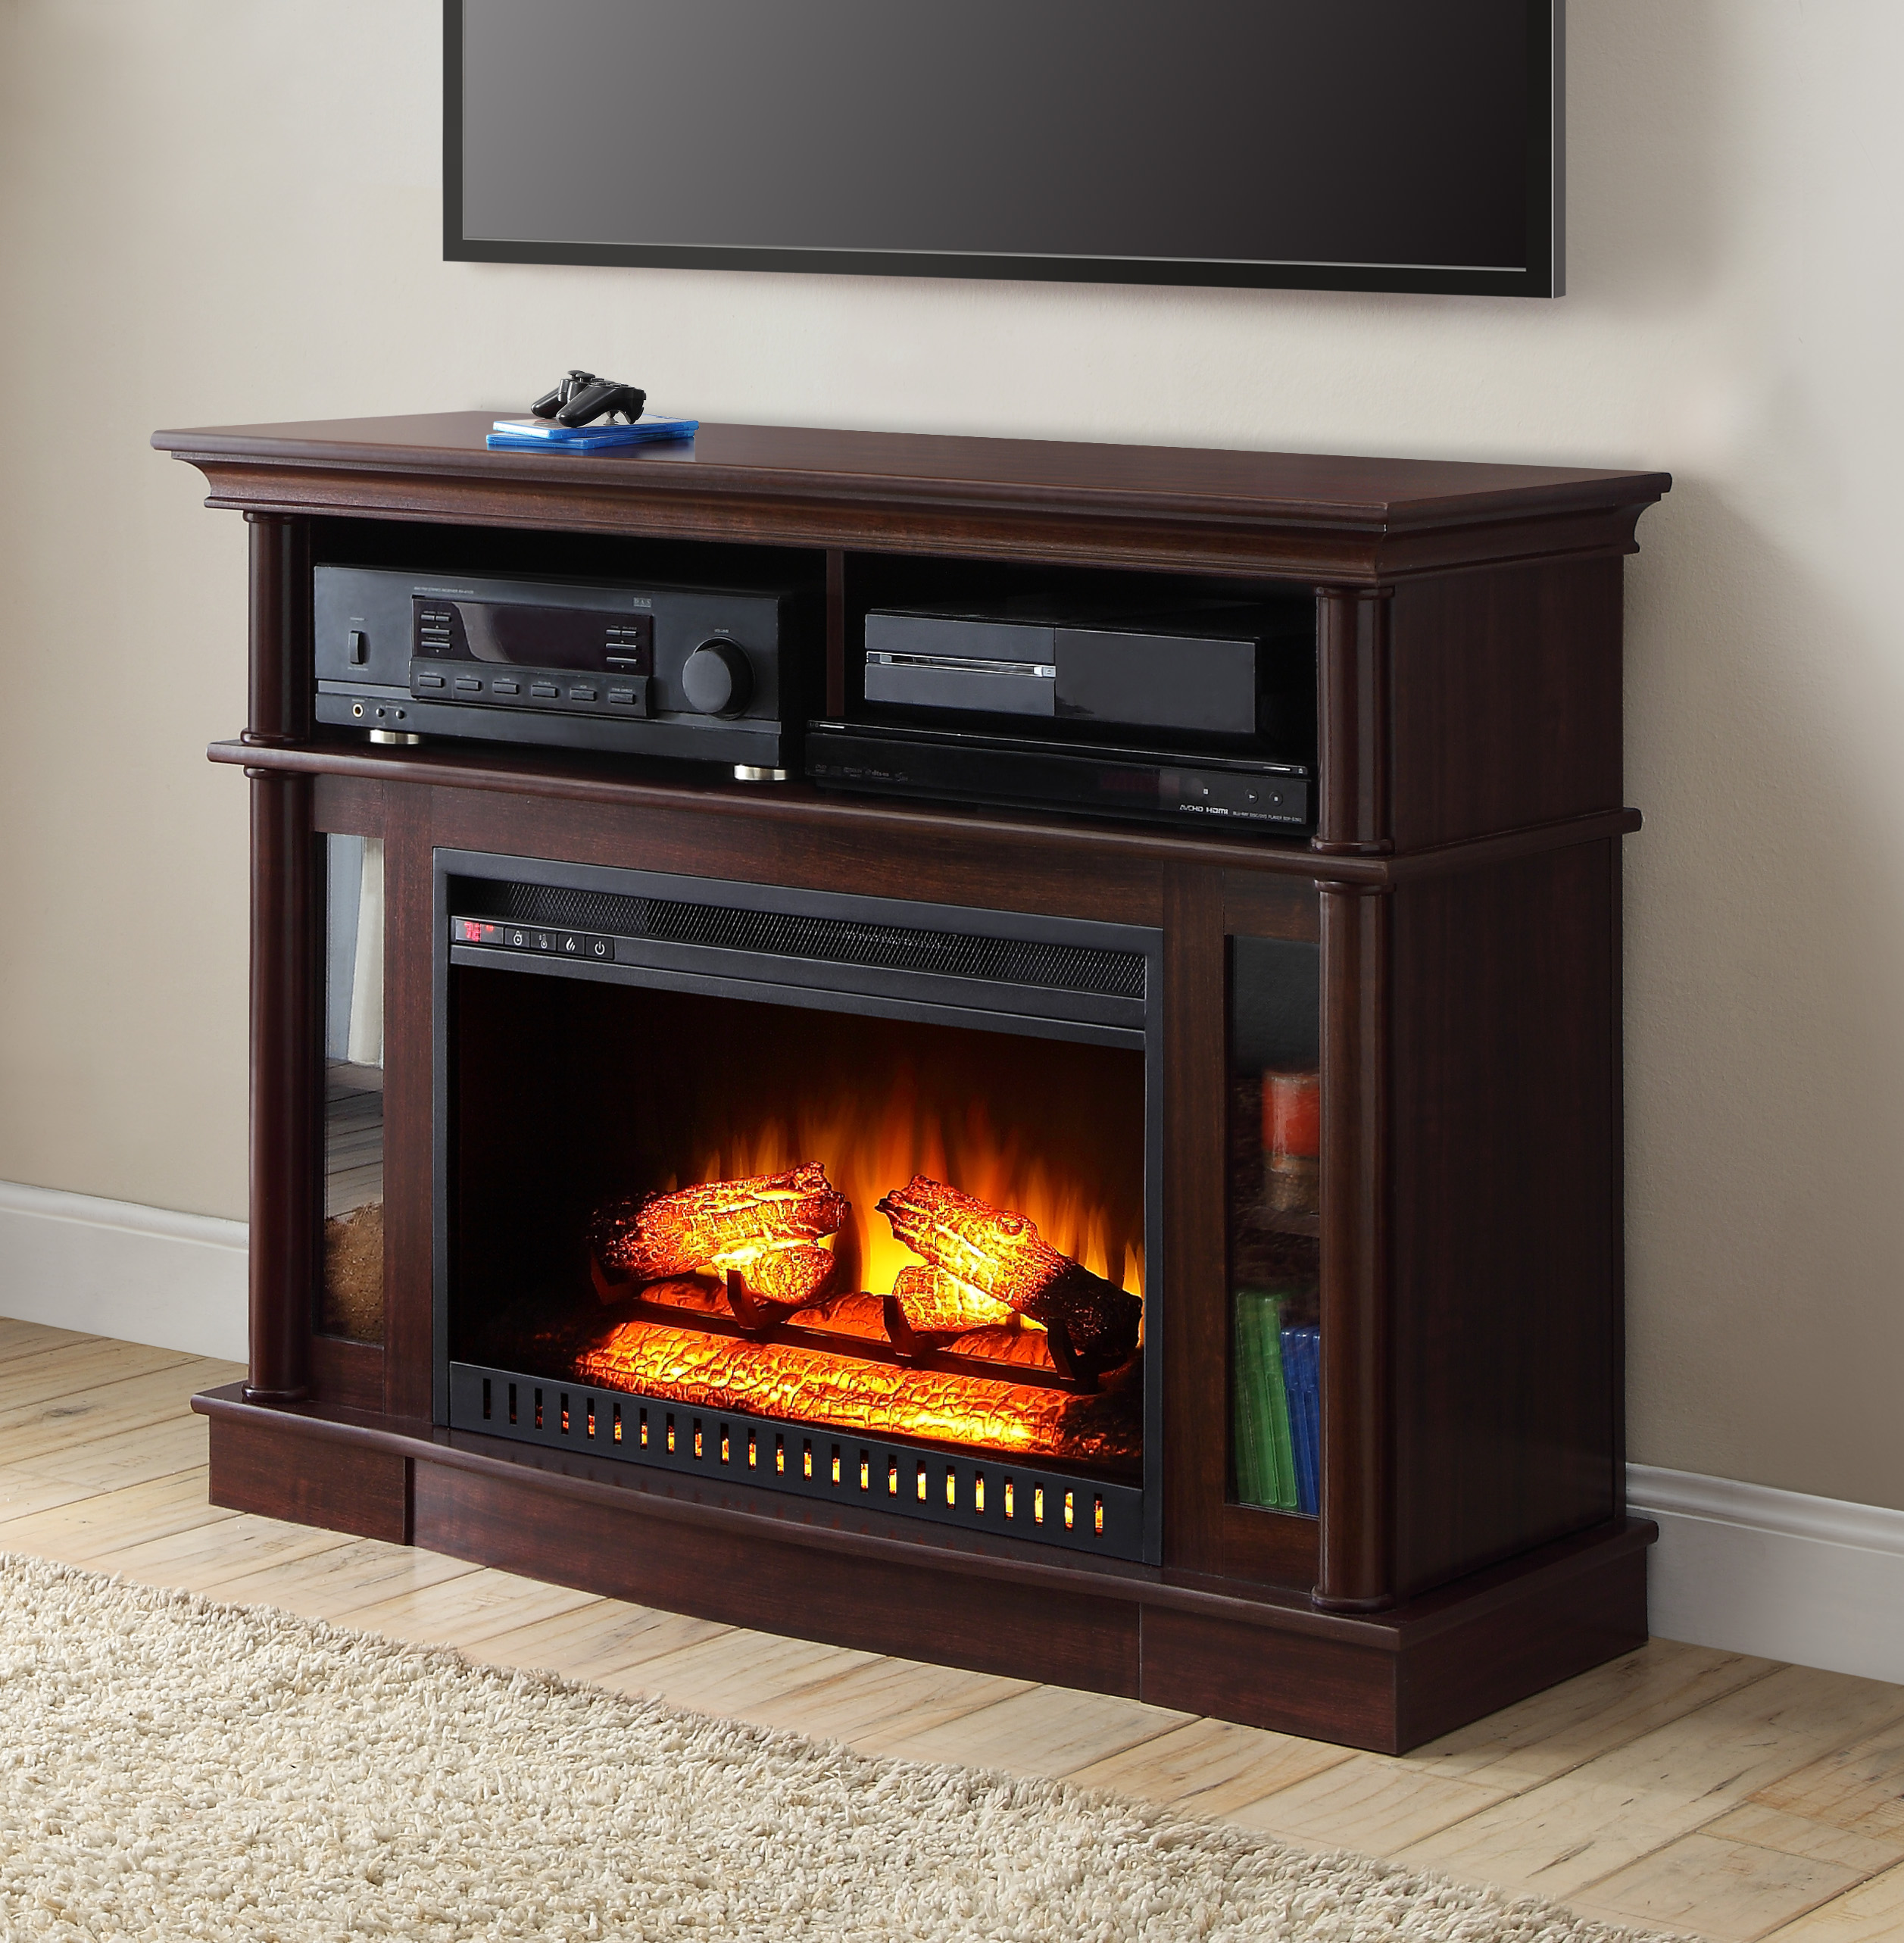 heater floor door glass dvd tv black brown also electric plus fireplace storage laminated on shelf and with cabinet cheap media rack wooden stand placed modern open player